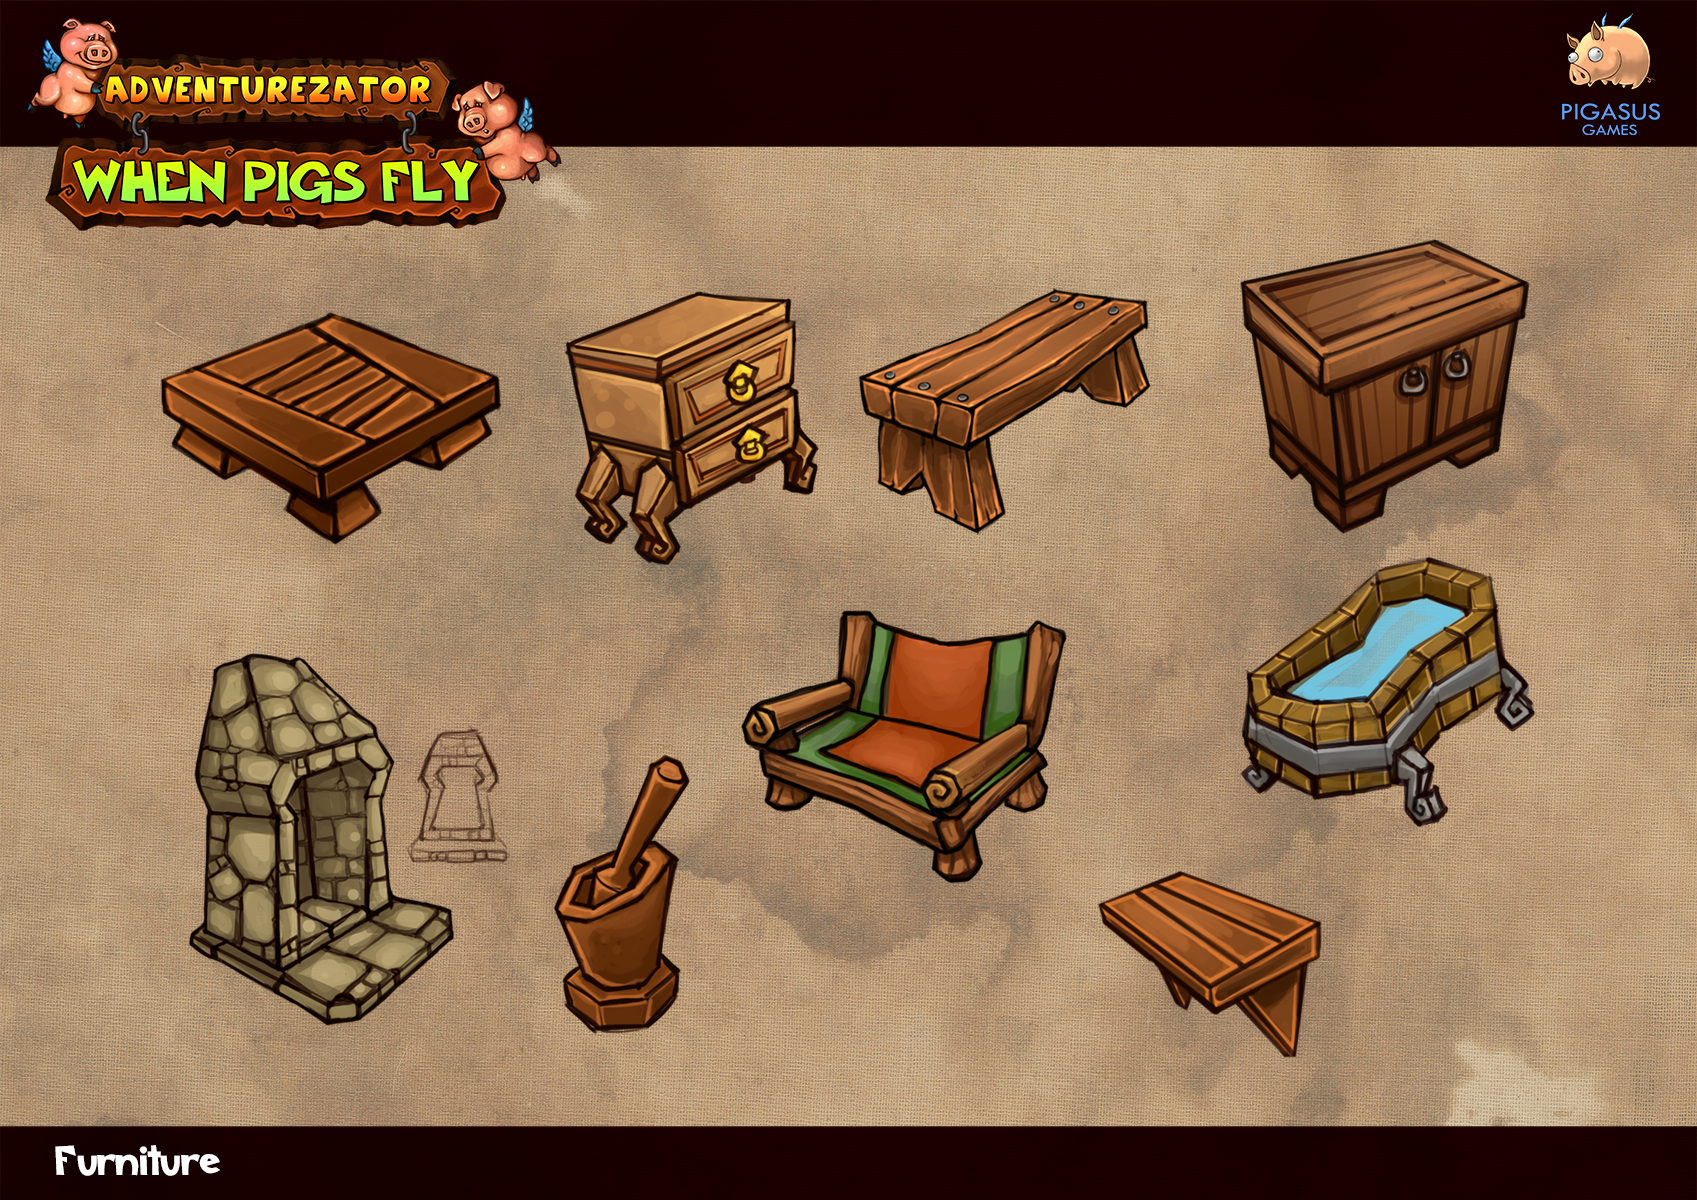 Concept Furniture Image Adventurezator When Pigs Fly Indie Db